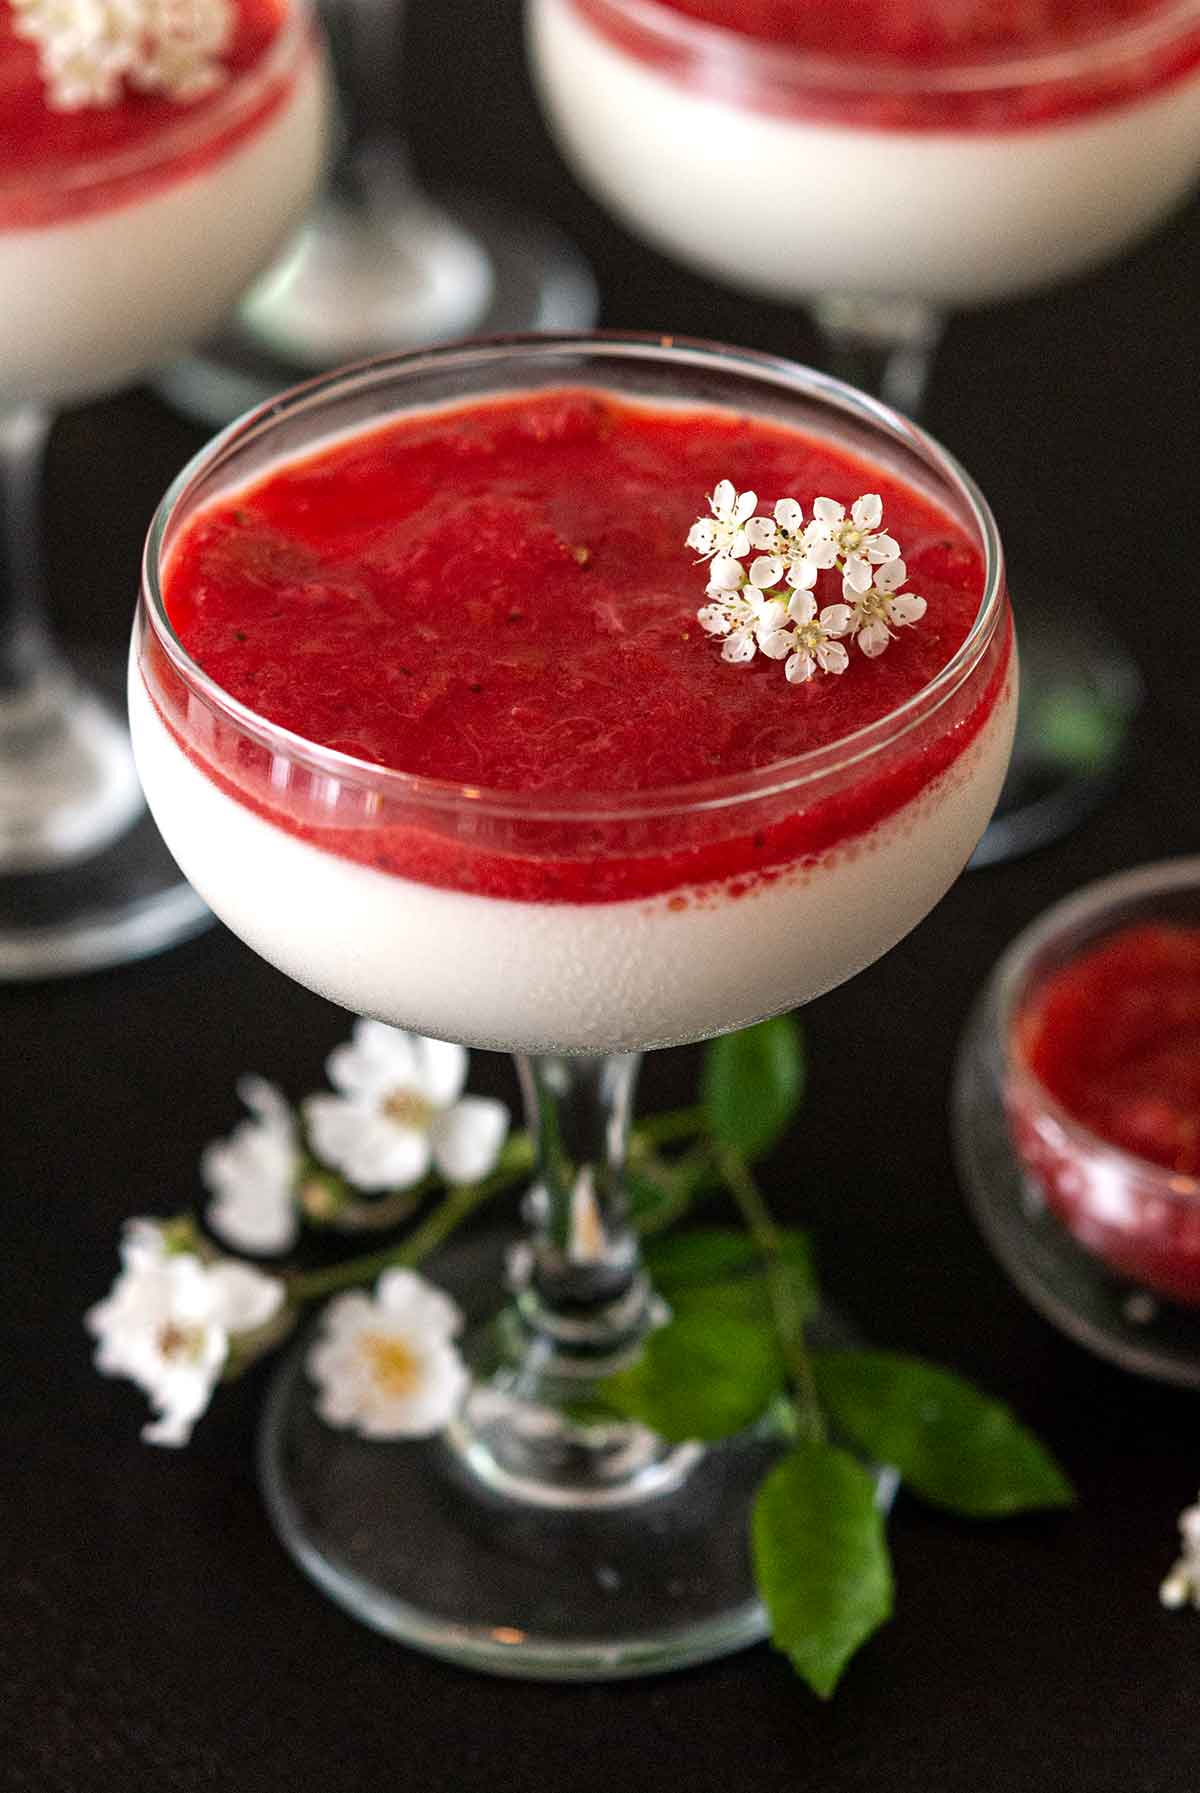 Panna cotta with strawberry-rhubarb compote in a glass, garnished with small flowers, in front of 2 others.